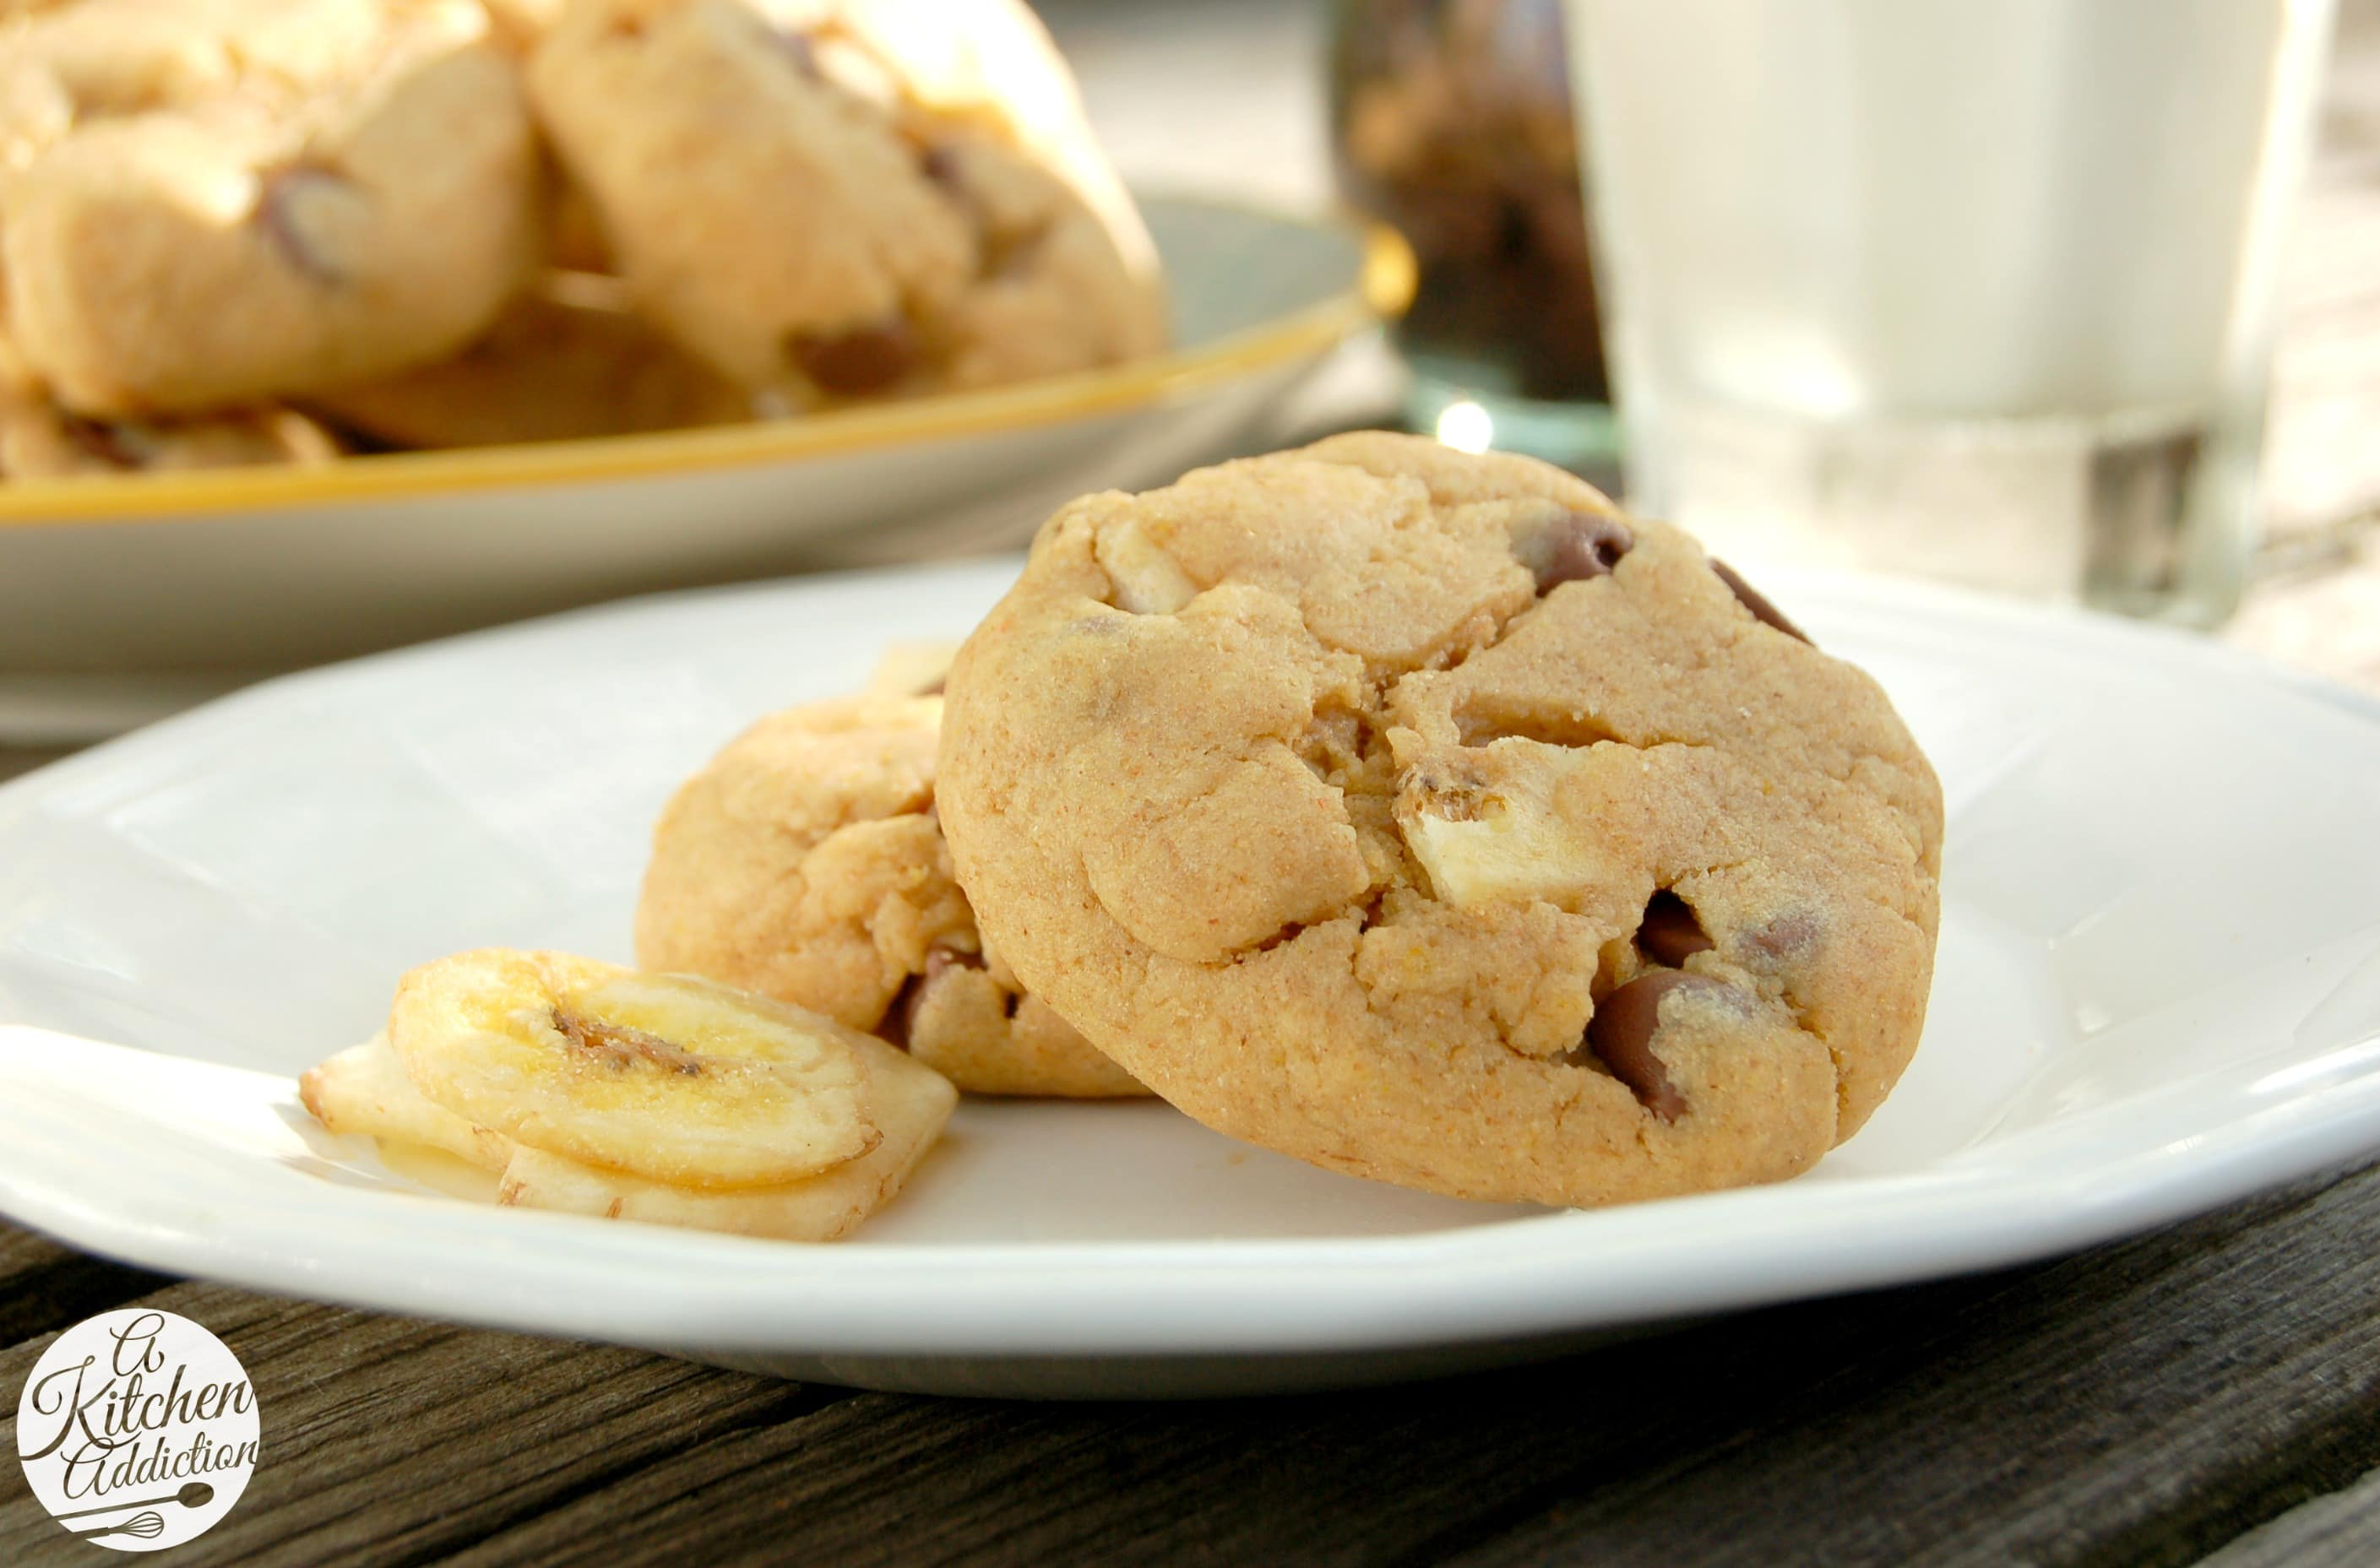 Homemade Peanut Butter Chocolate Chip Cookies